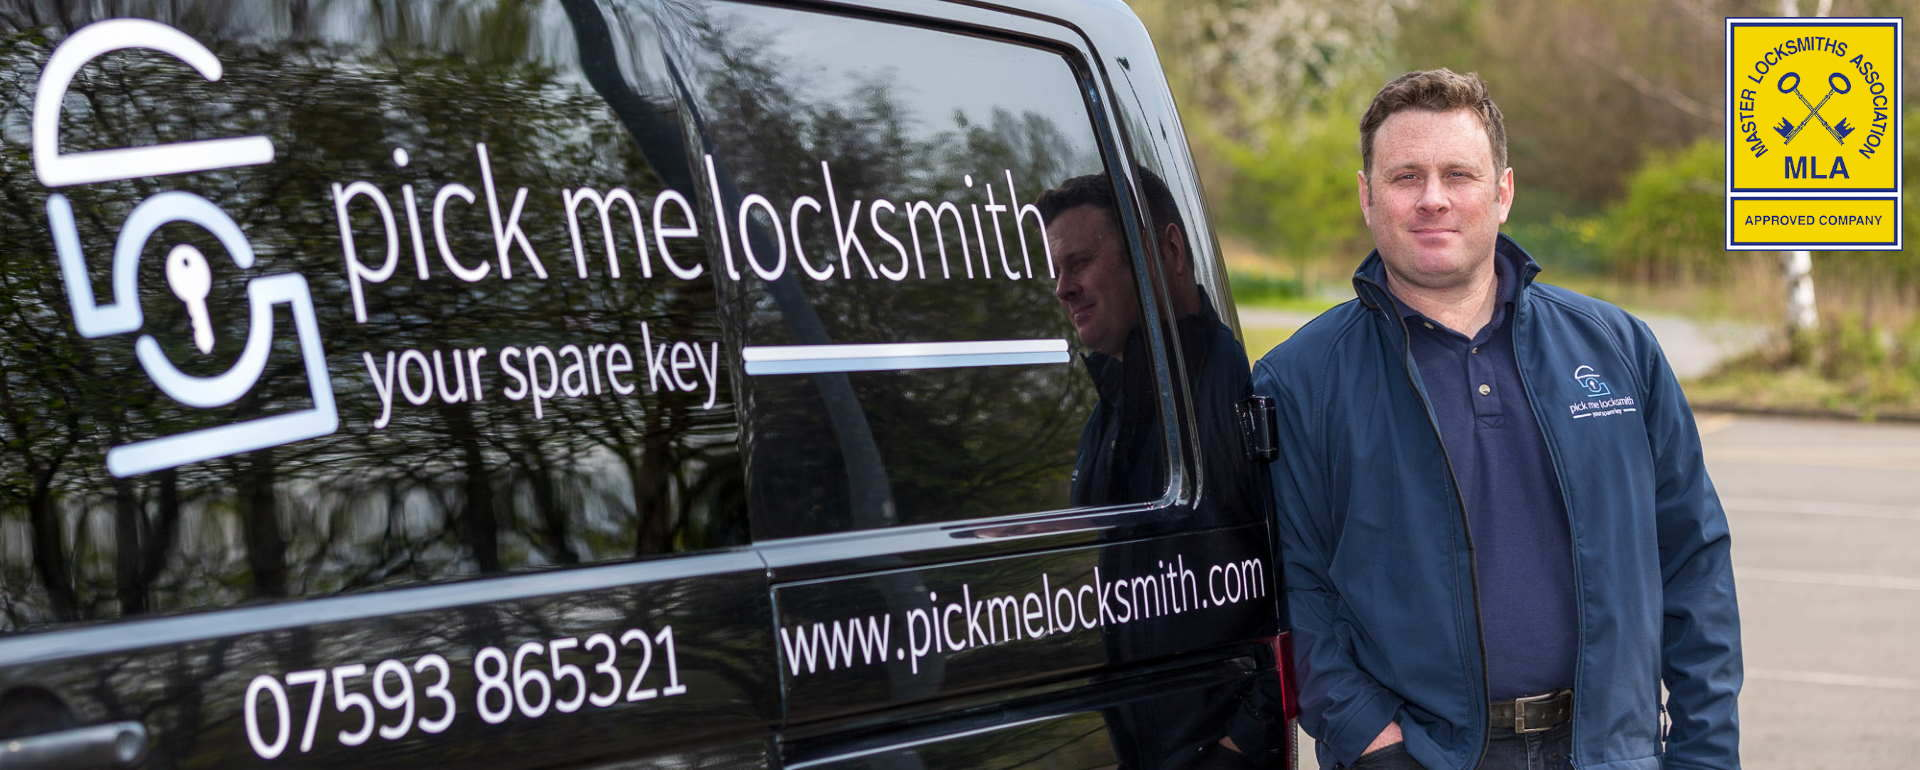 Mark Santi By his van showing his local locksmith service Mark Santi Master Locksmith Locksmiths Leicester Locksmith Near Me